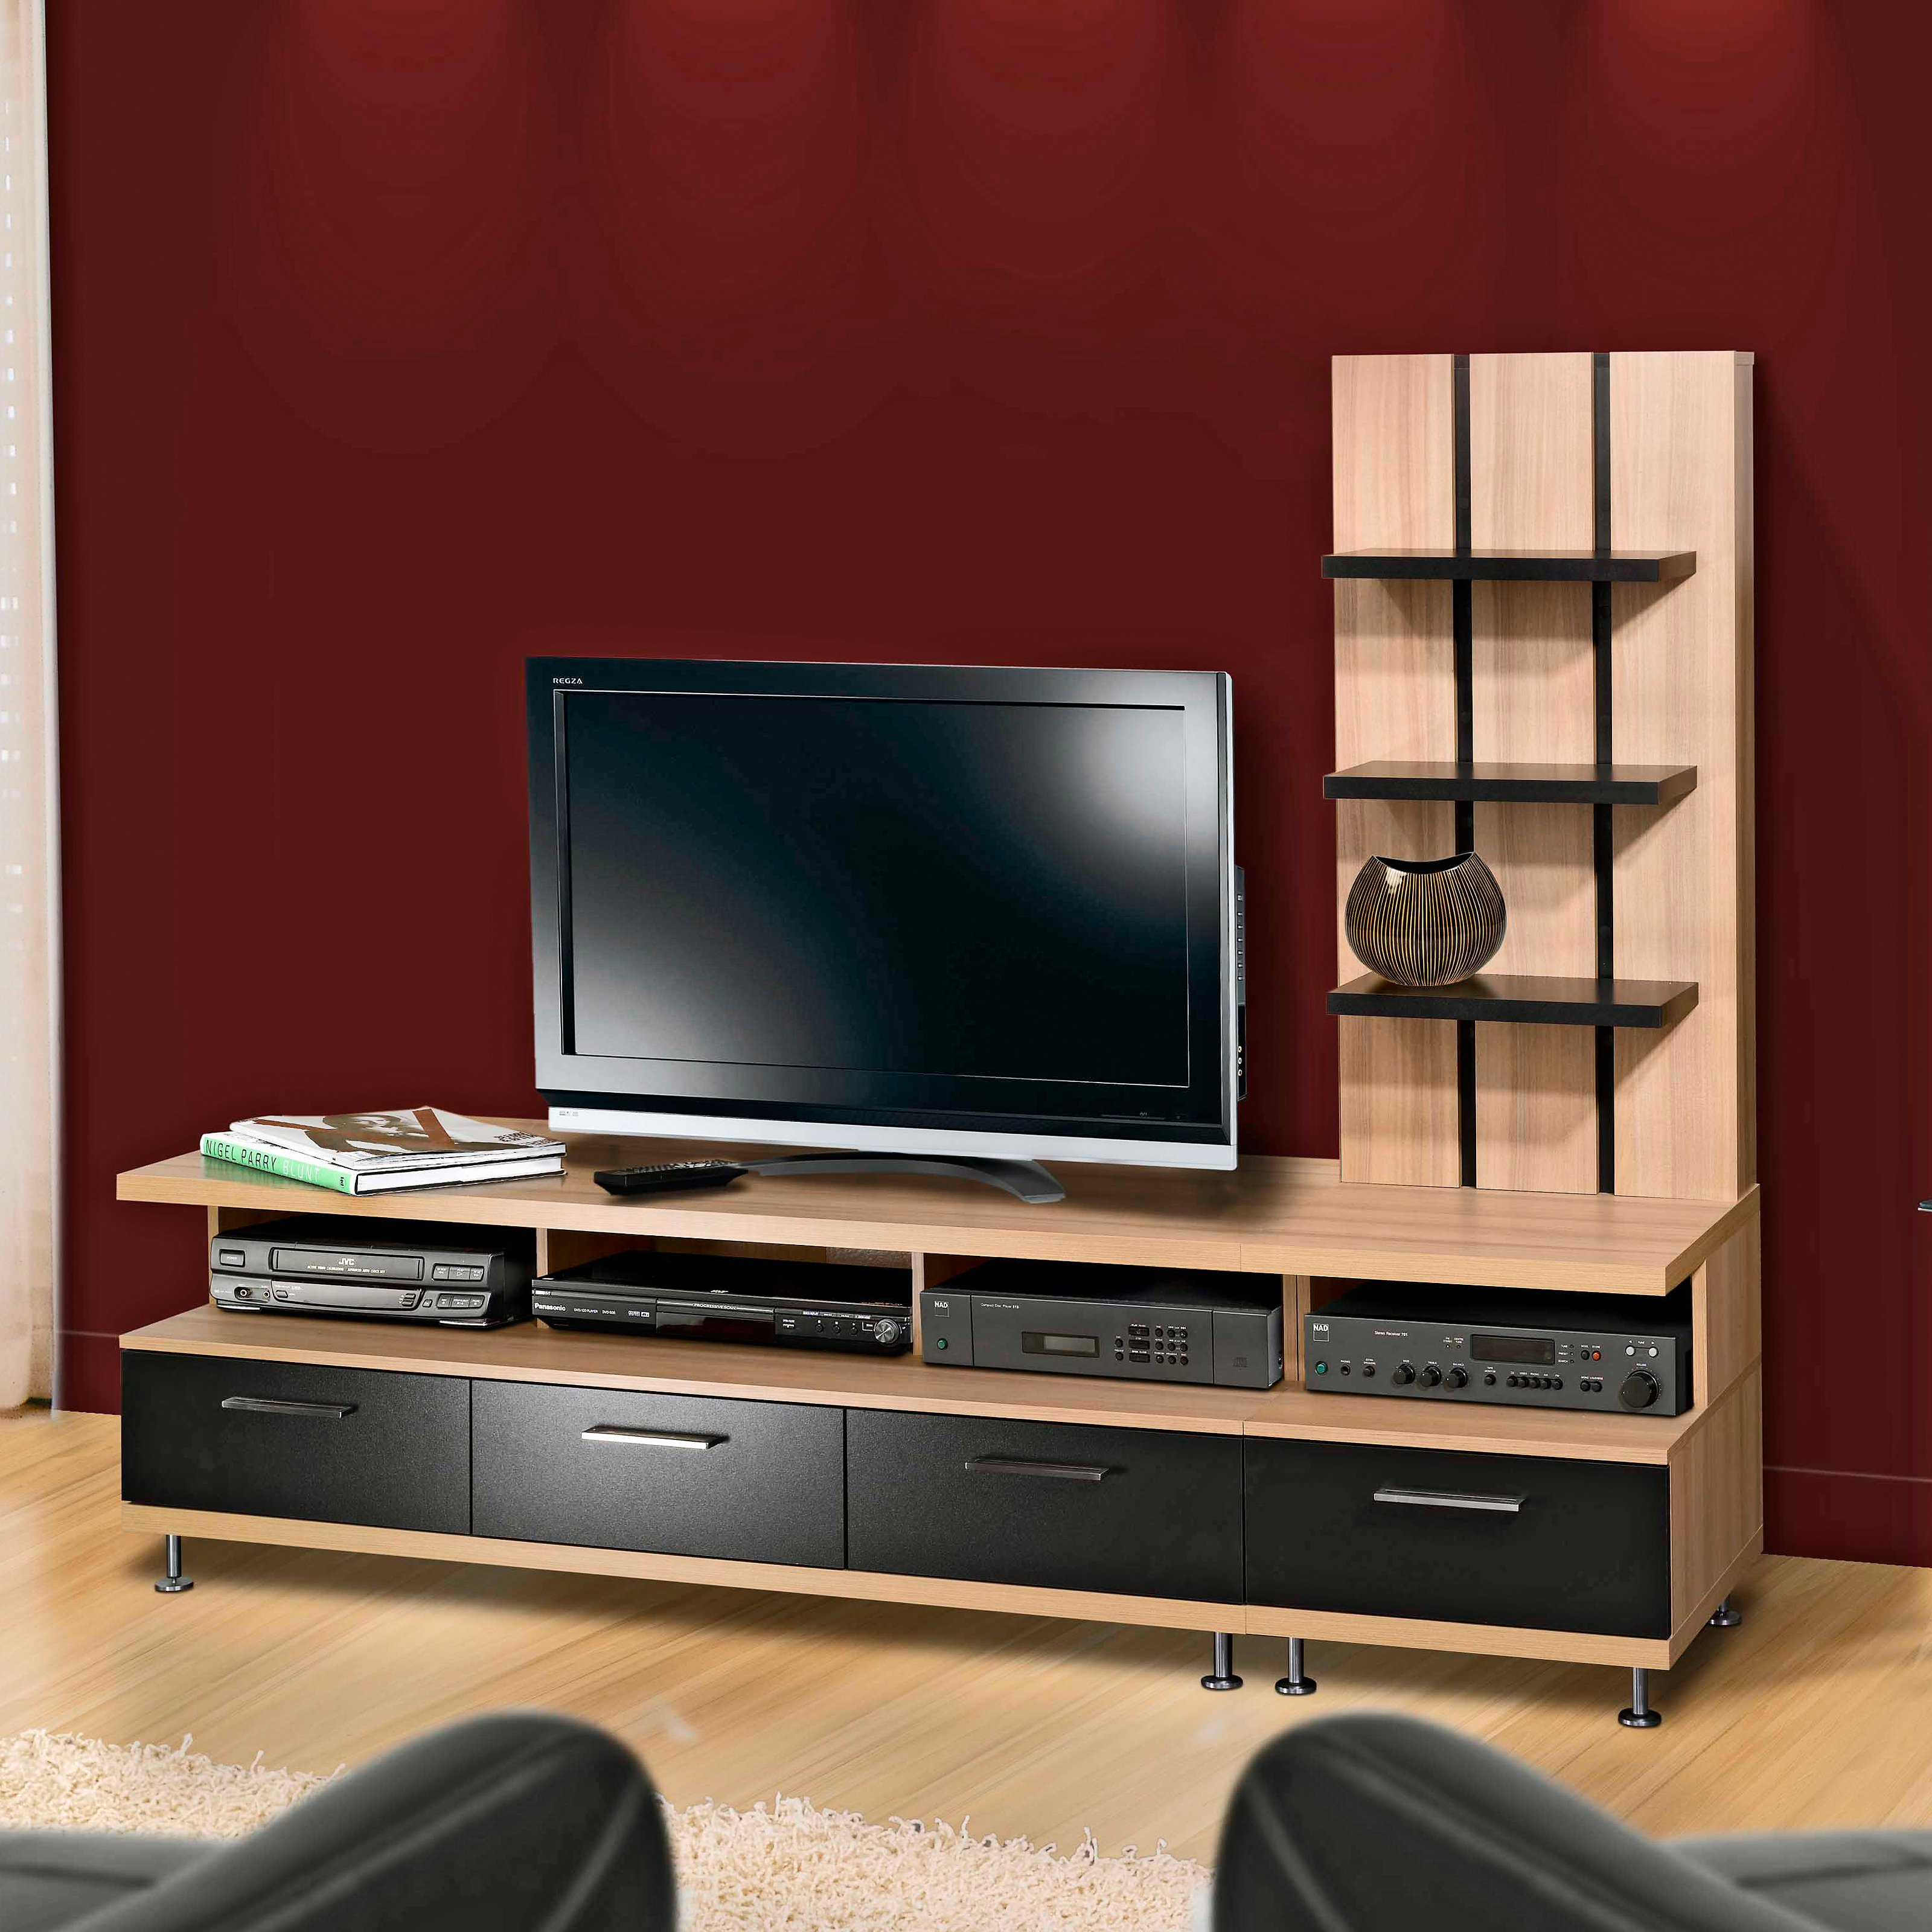 Best Contemporary Tv Console For Flat Screens — All Contemporary Design Intended For Famous Contemporary Tv Cabinets For Flat Screens (View 6 of 20)